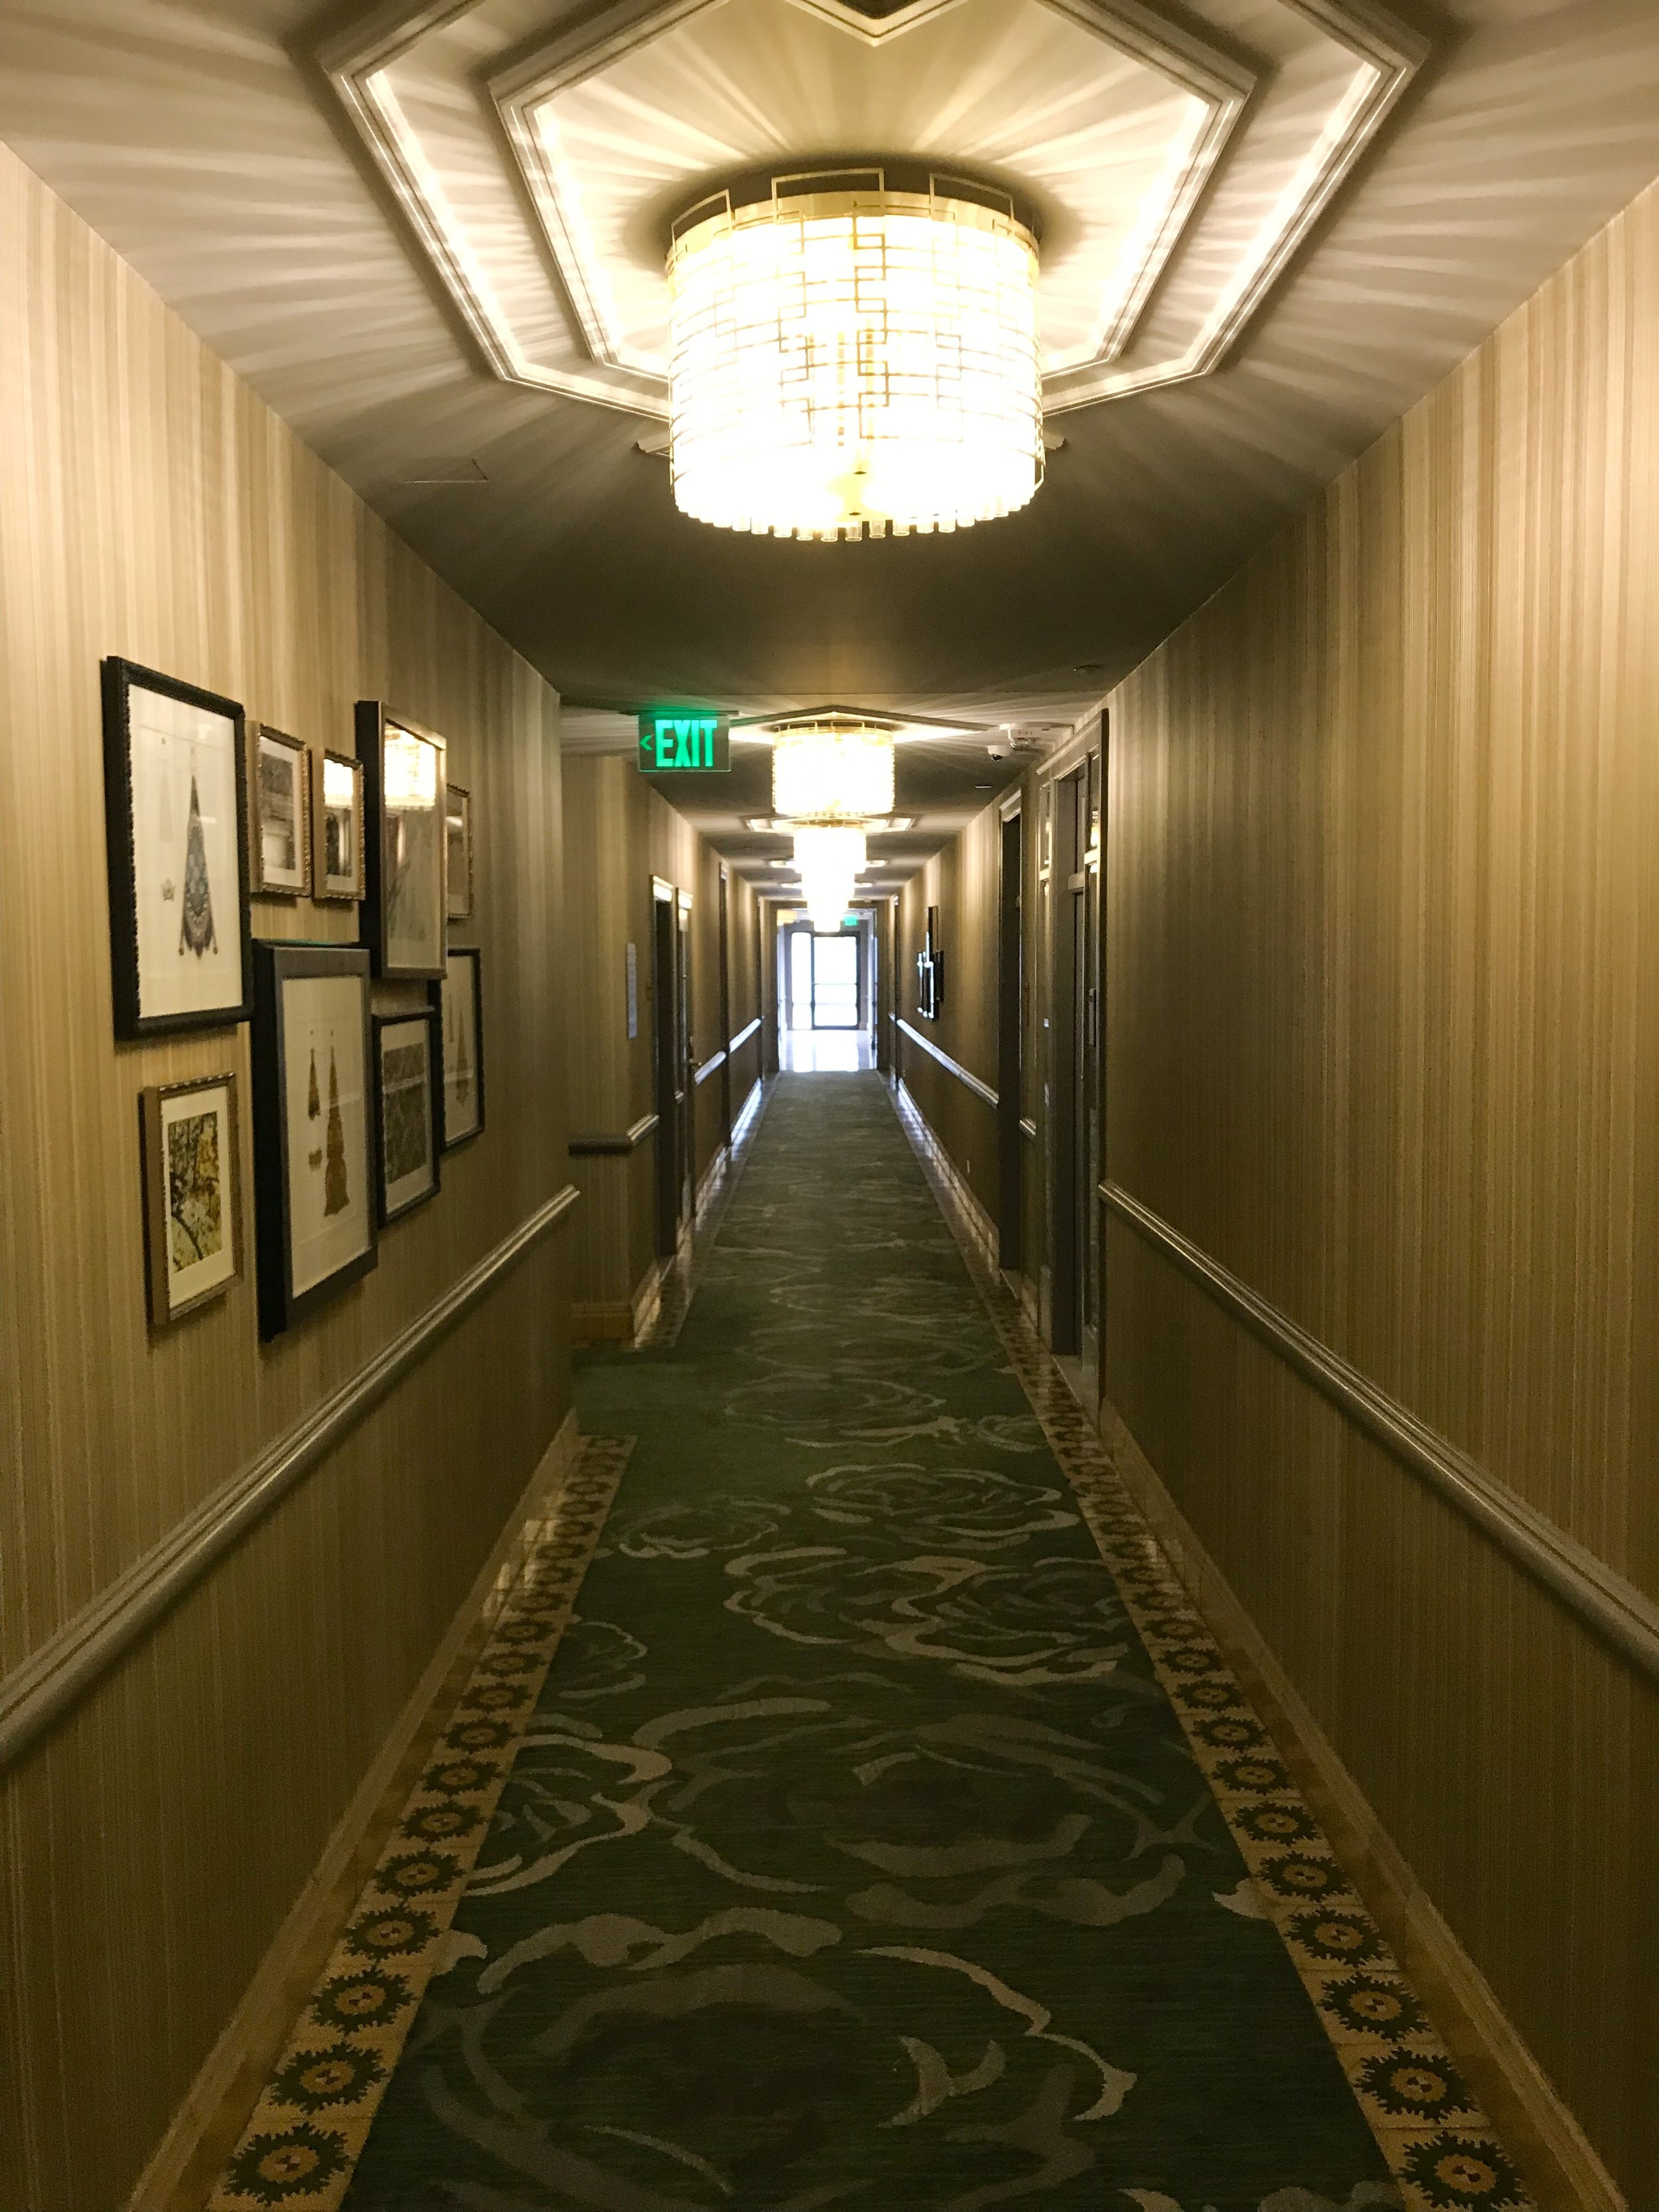 The hallway leading to the rooms.